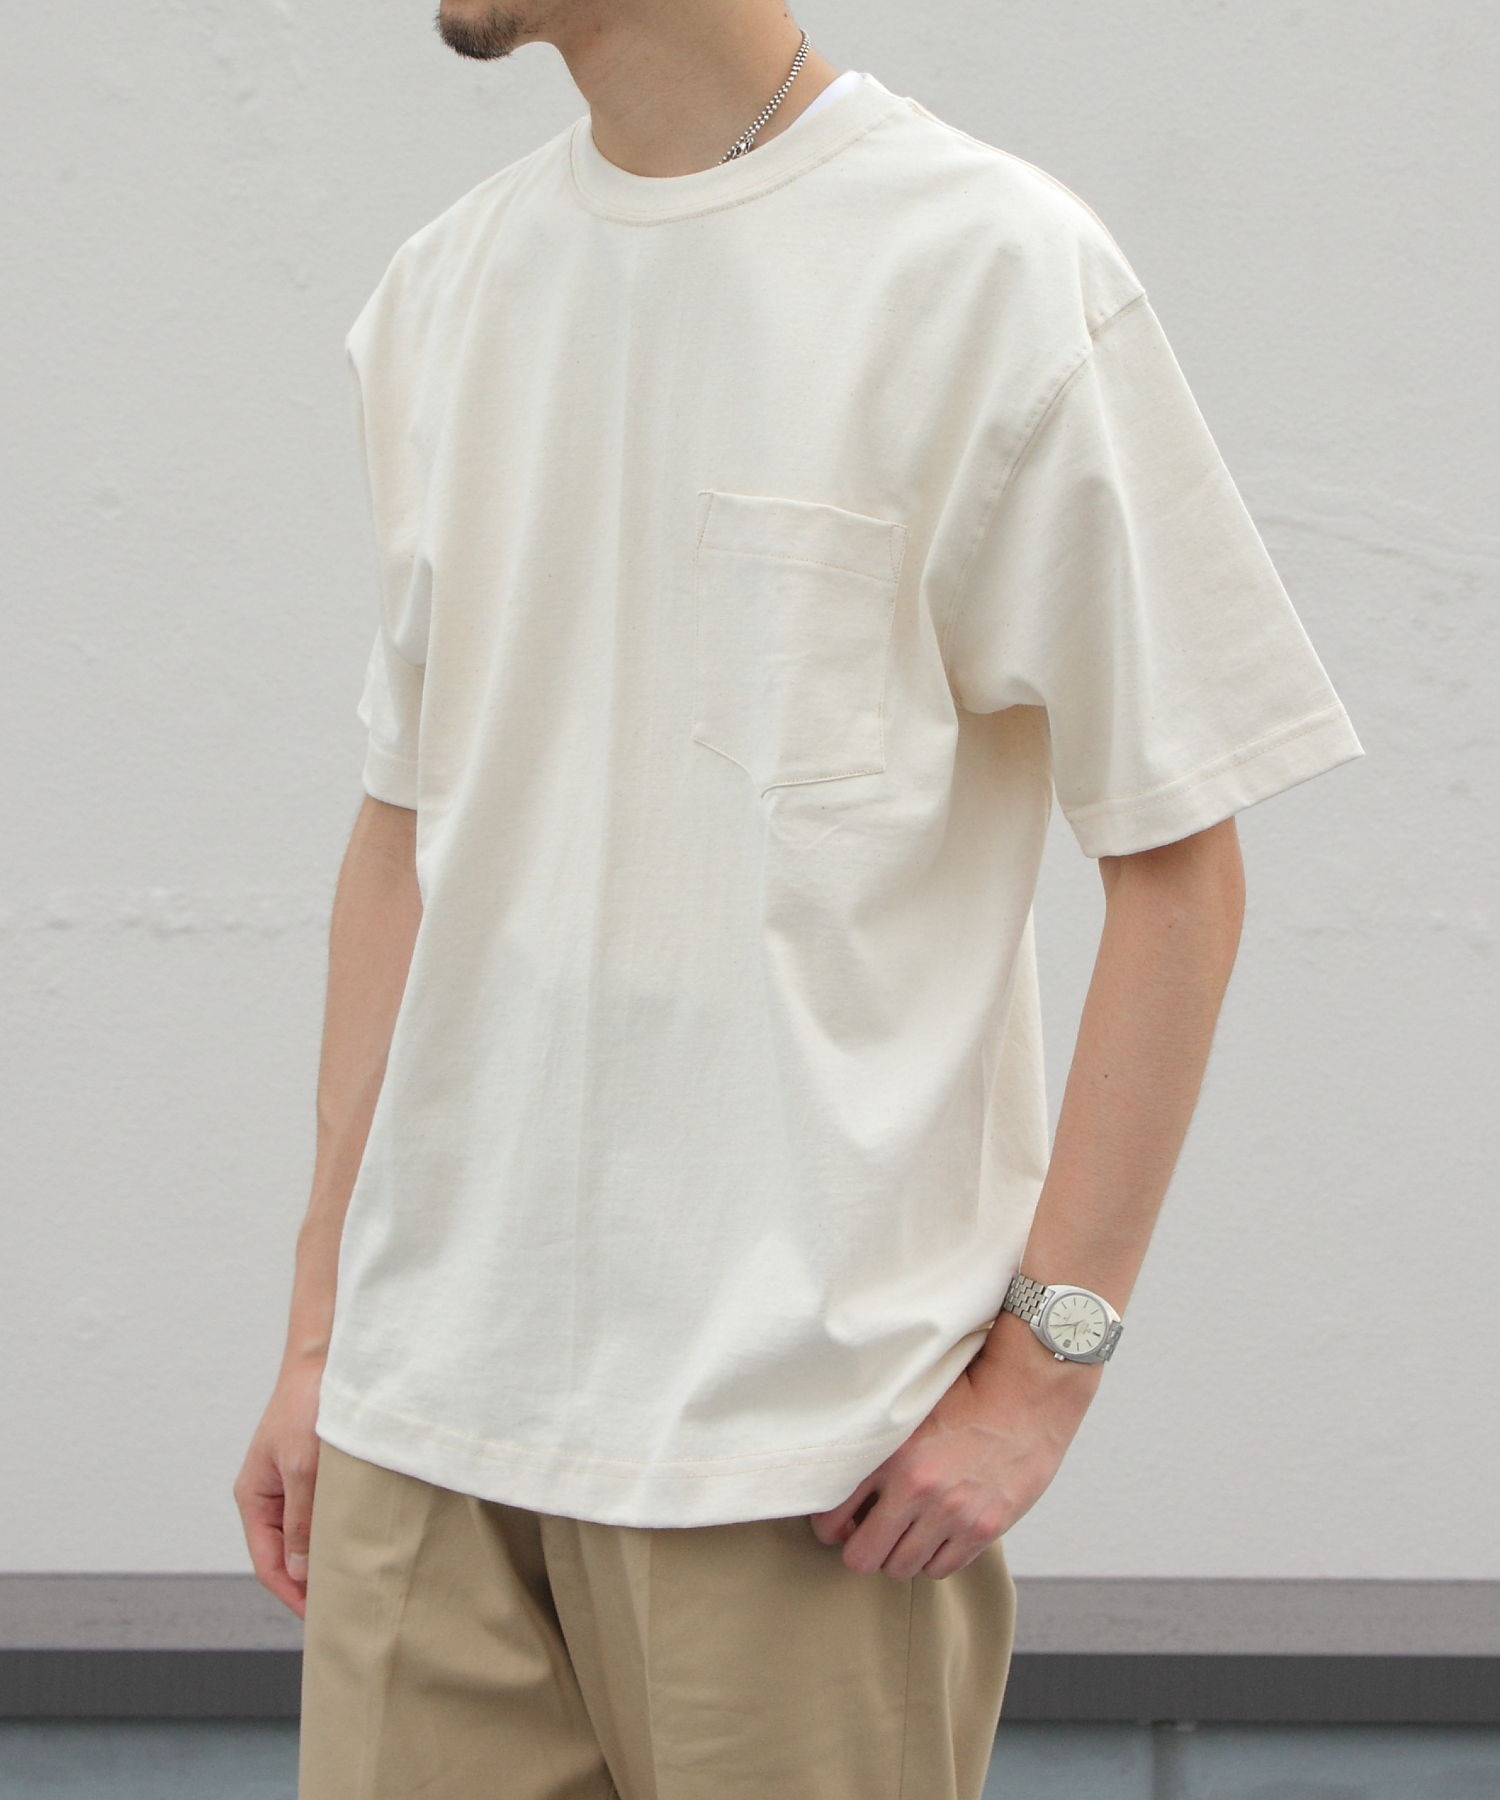 CAMBER/キャンバー ポケットTEE 302